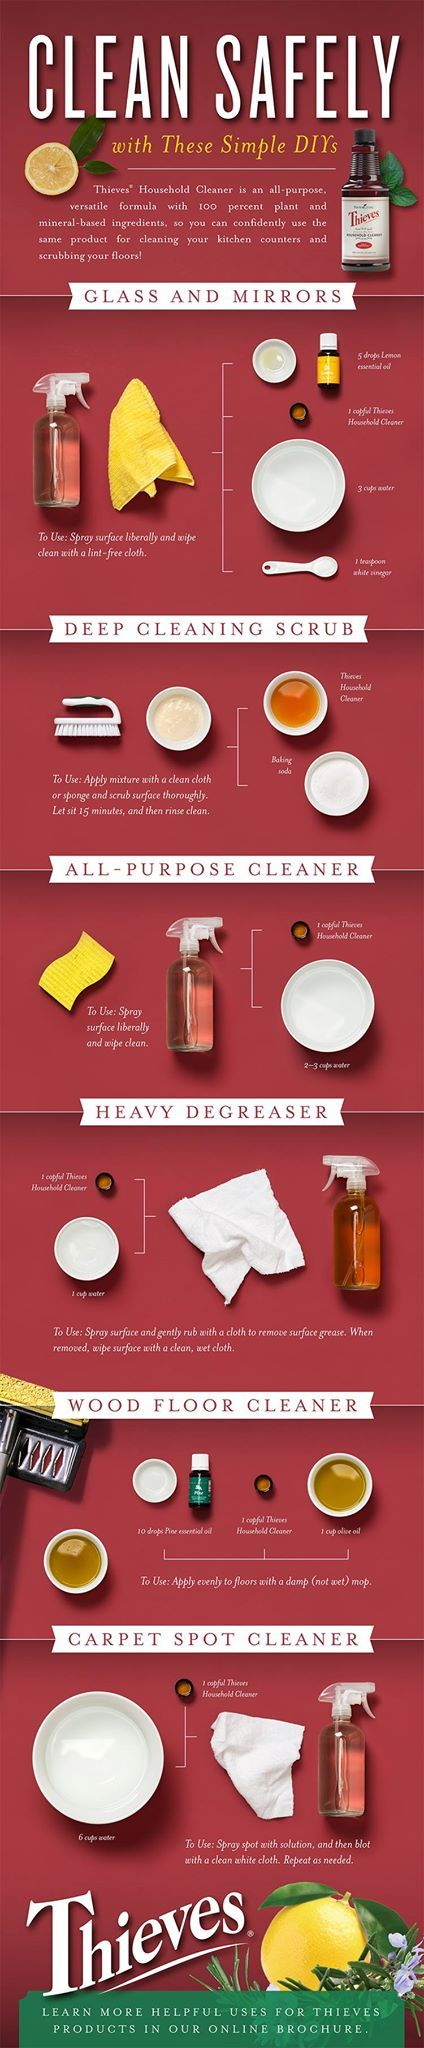 Helpful uses for Young Living's Thieves Household Cleaner. I clean EVERYTHING with this!